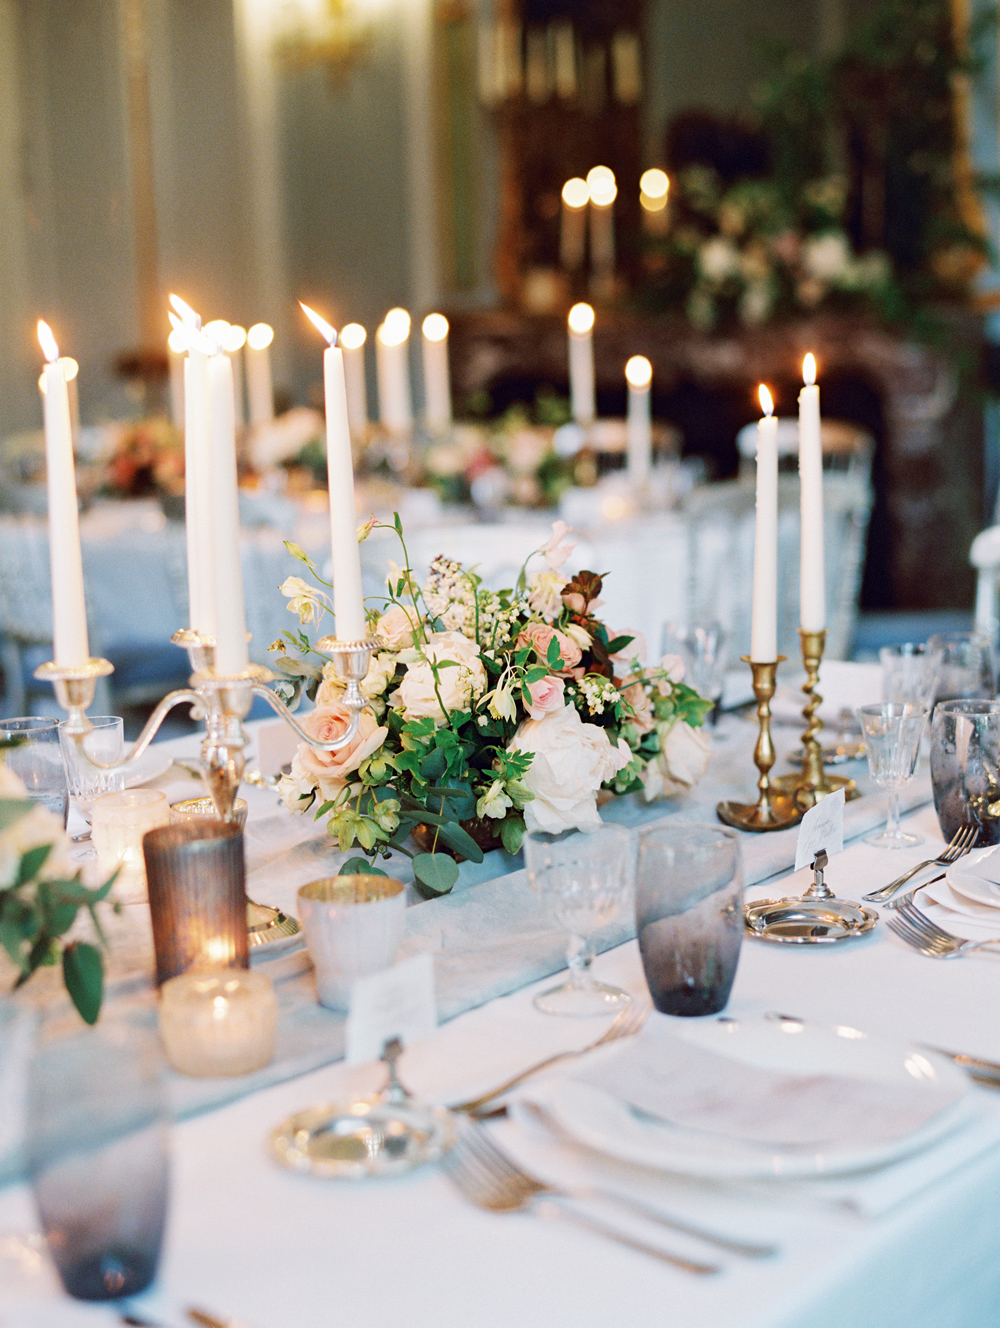 wedding reception table setting decorated with candle sticks and roses